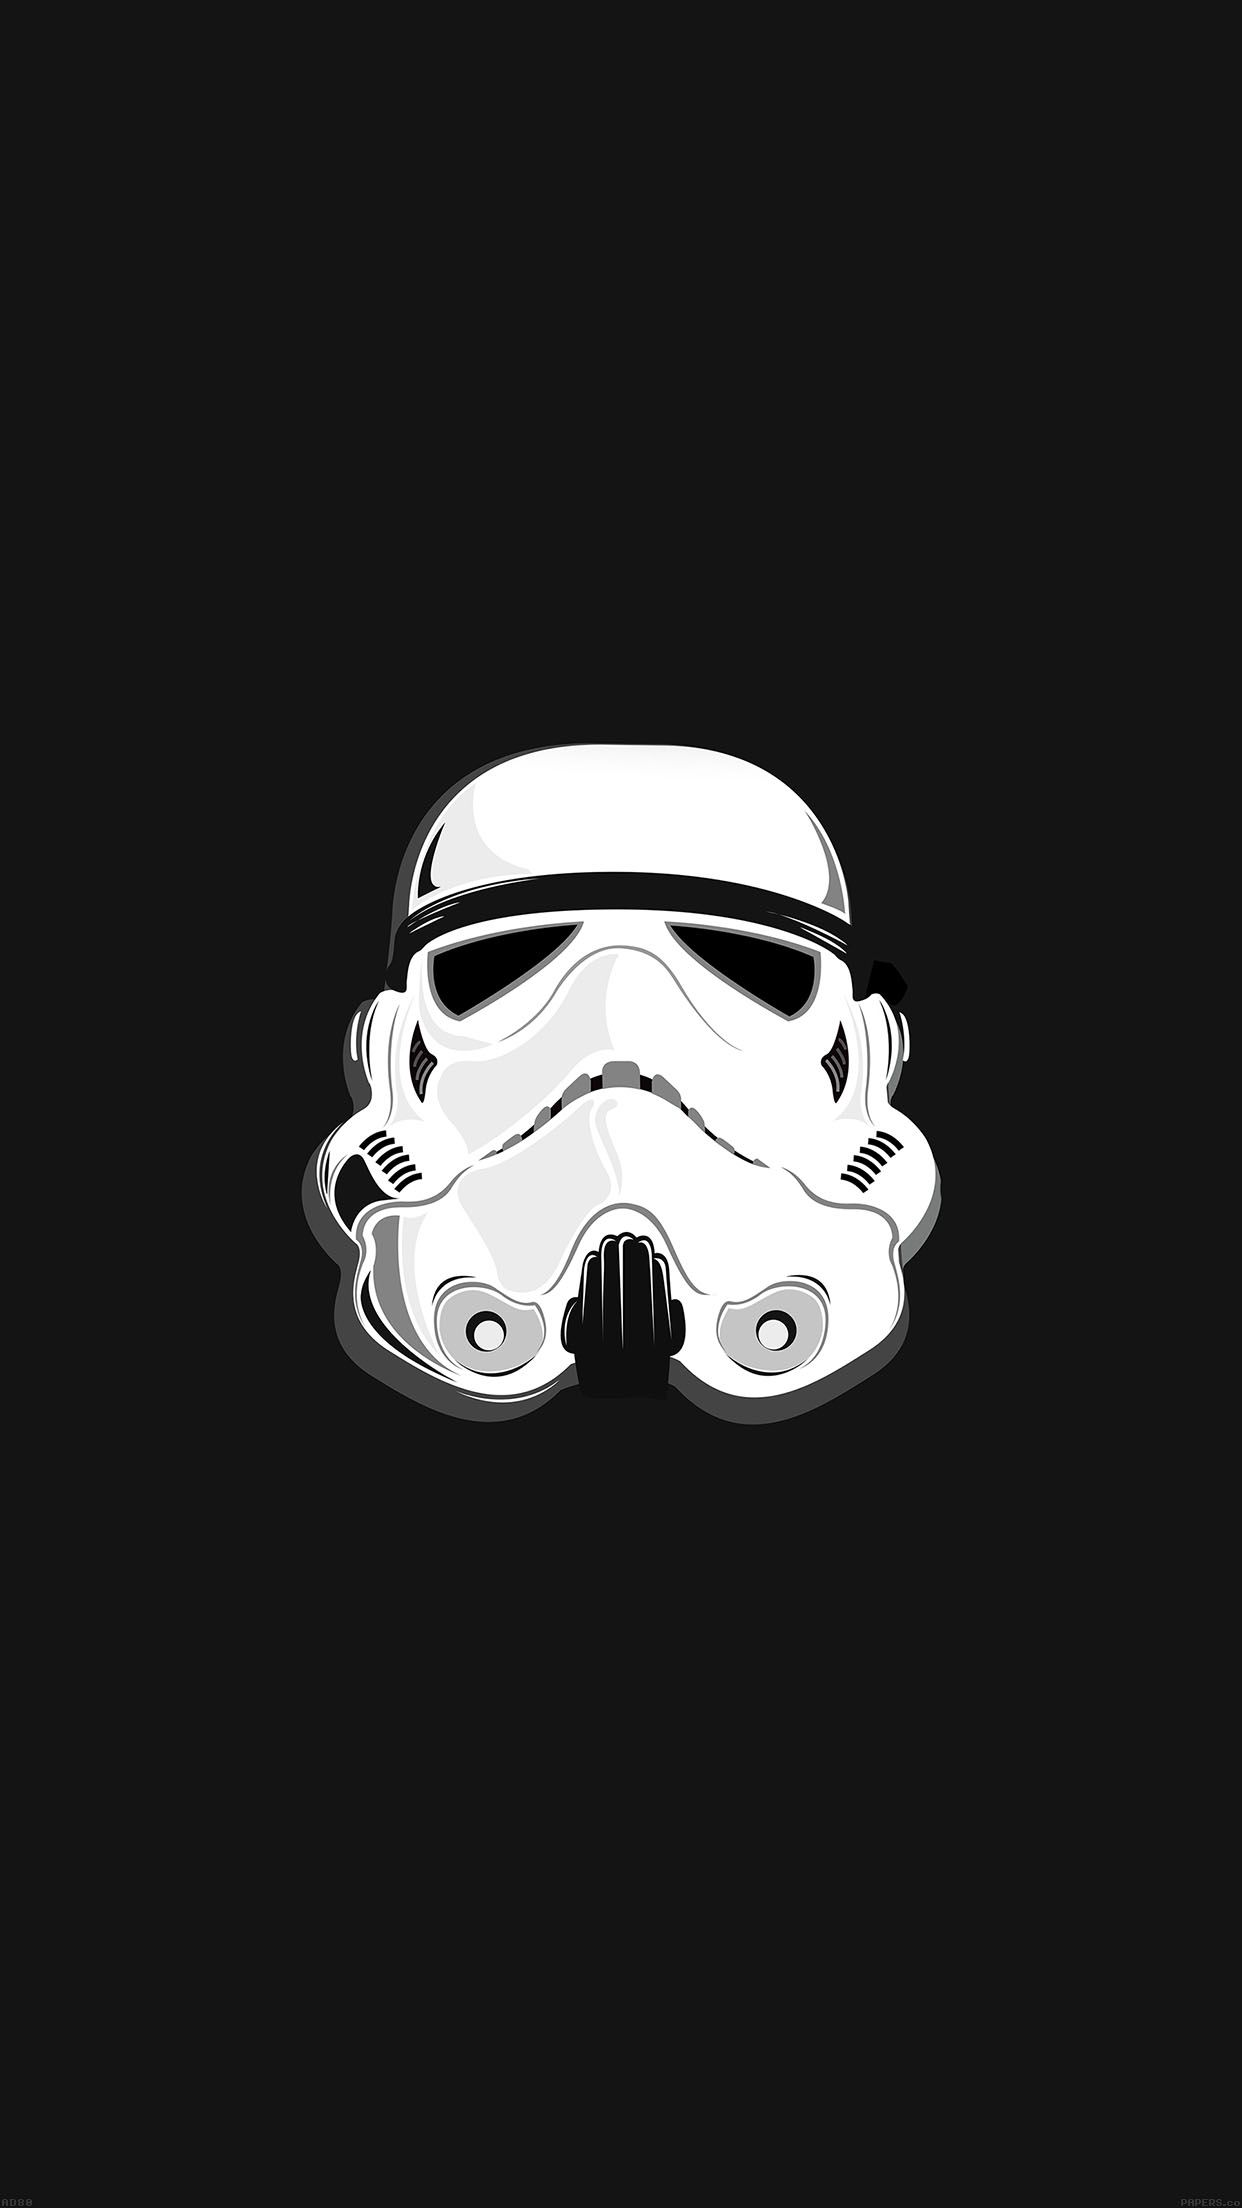 Star Wars Stormtrooper Illustration iPhone 6 Plus HD